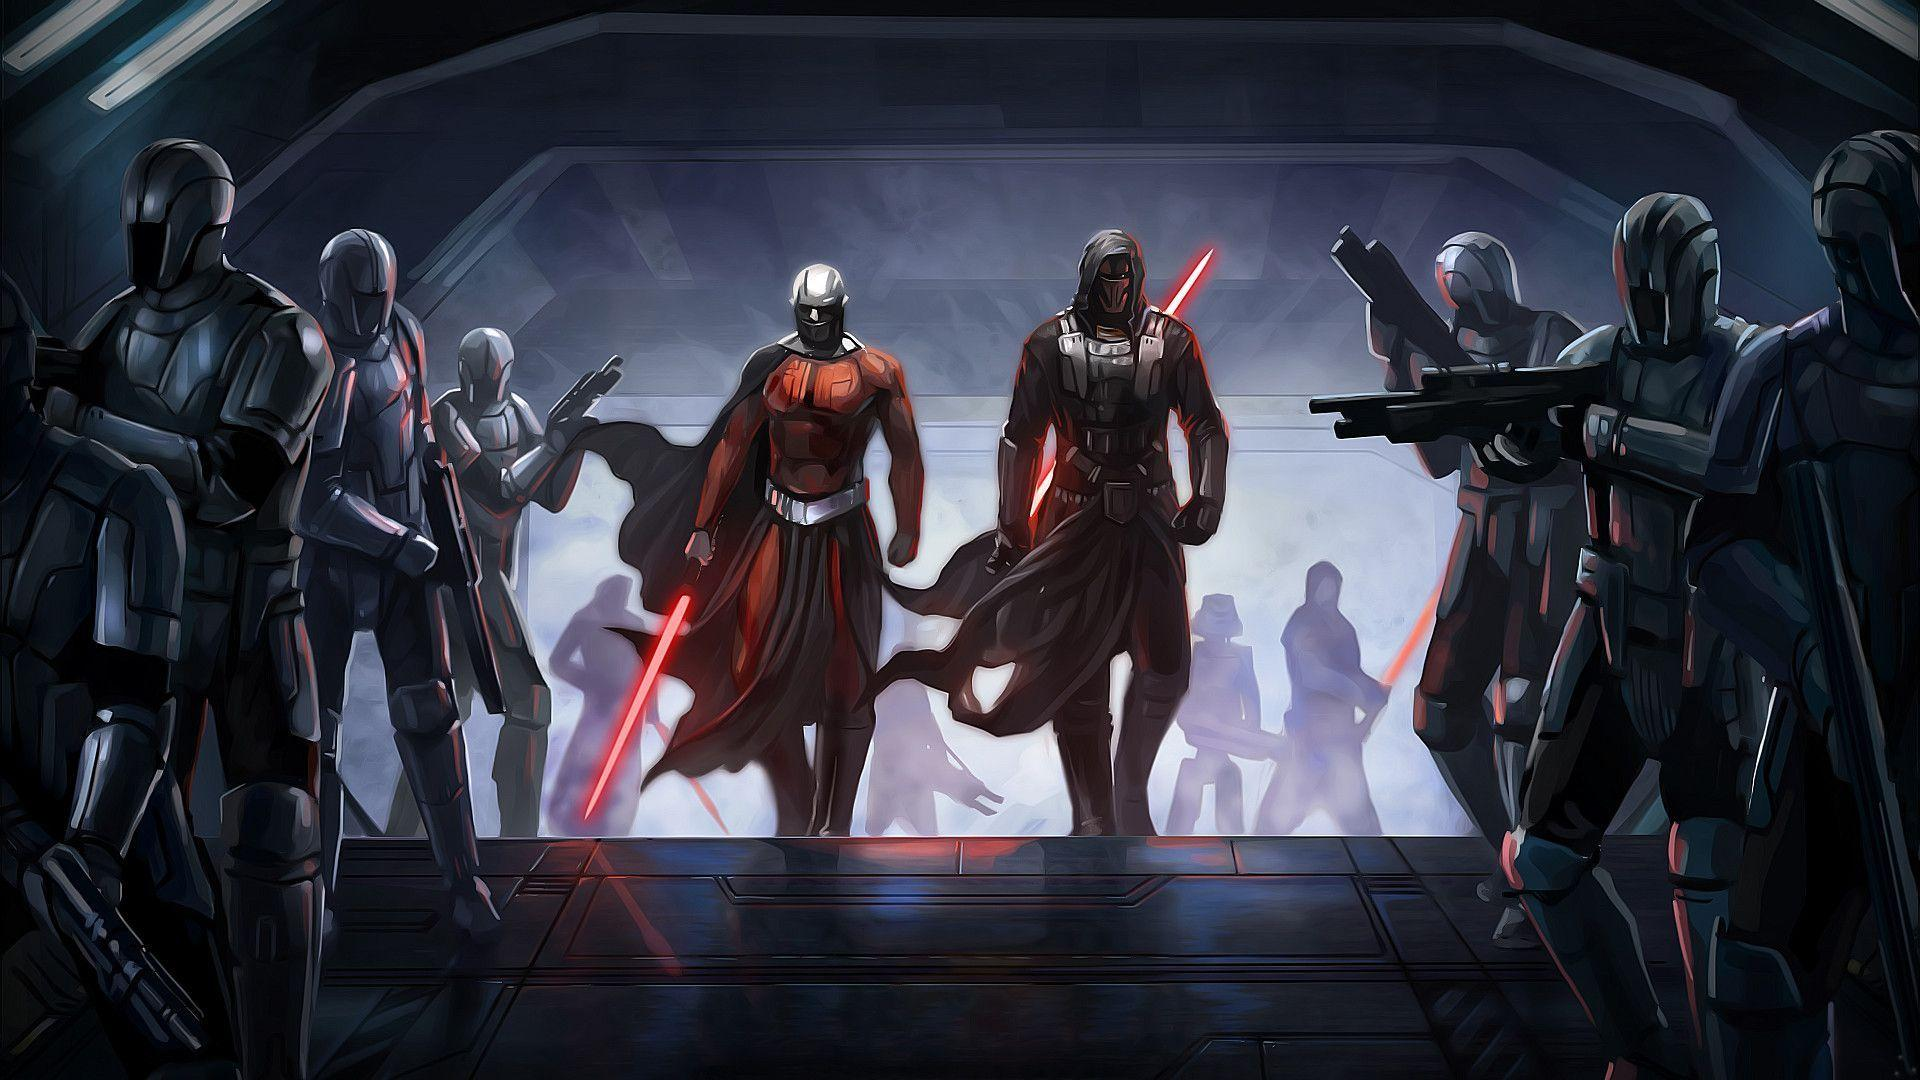 sith wallpaper 1080p star - photo #45